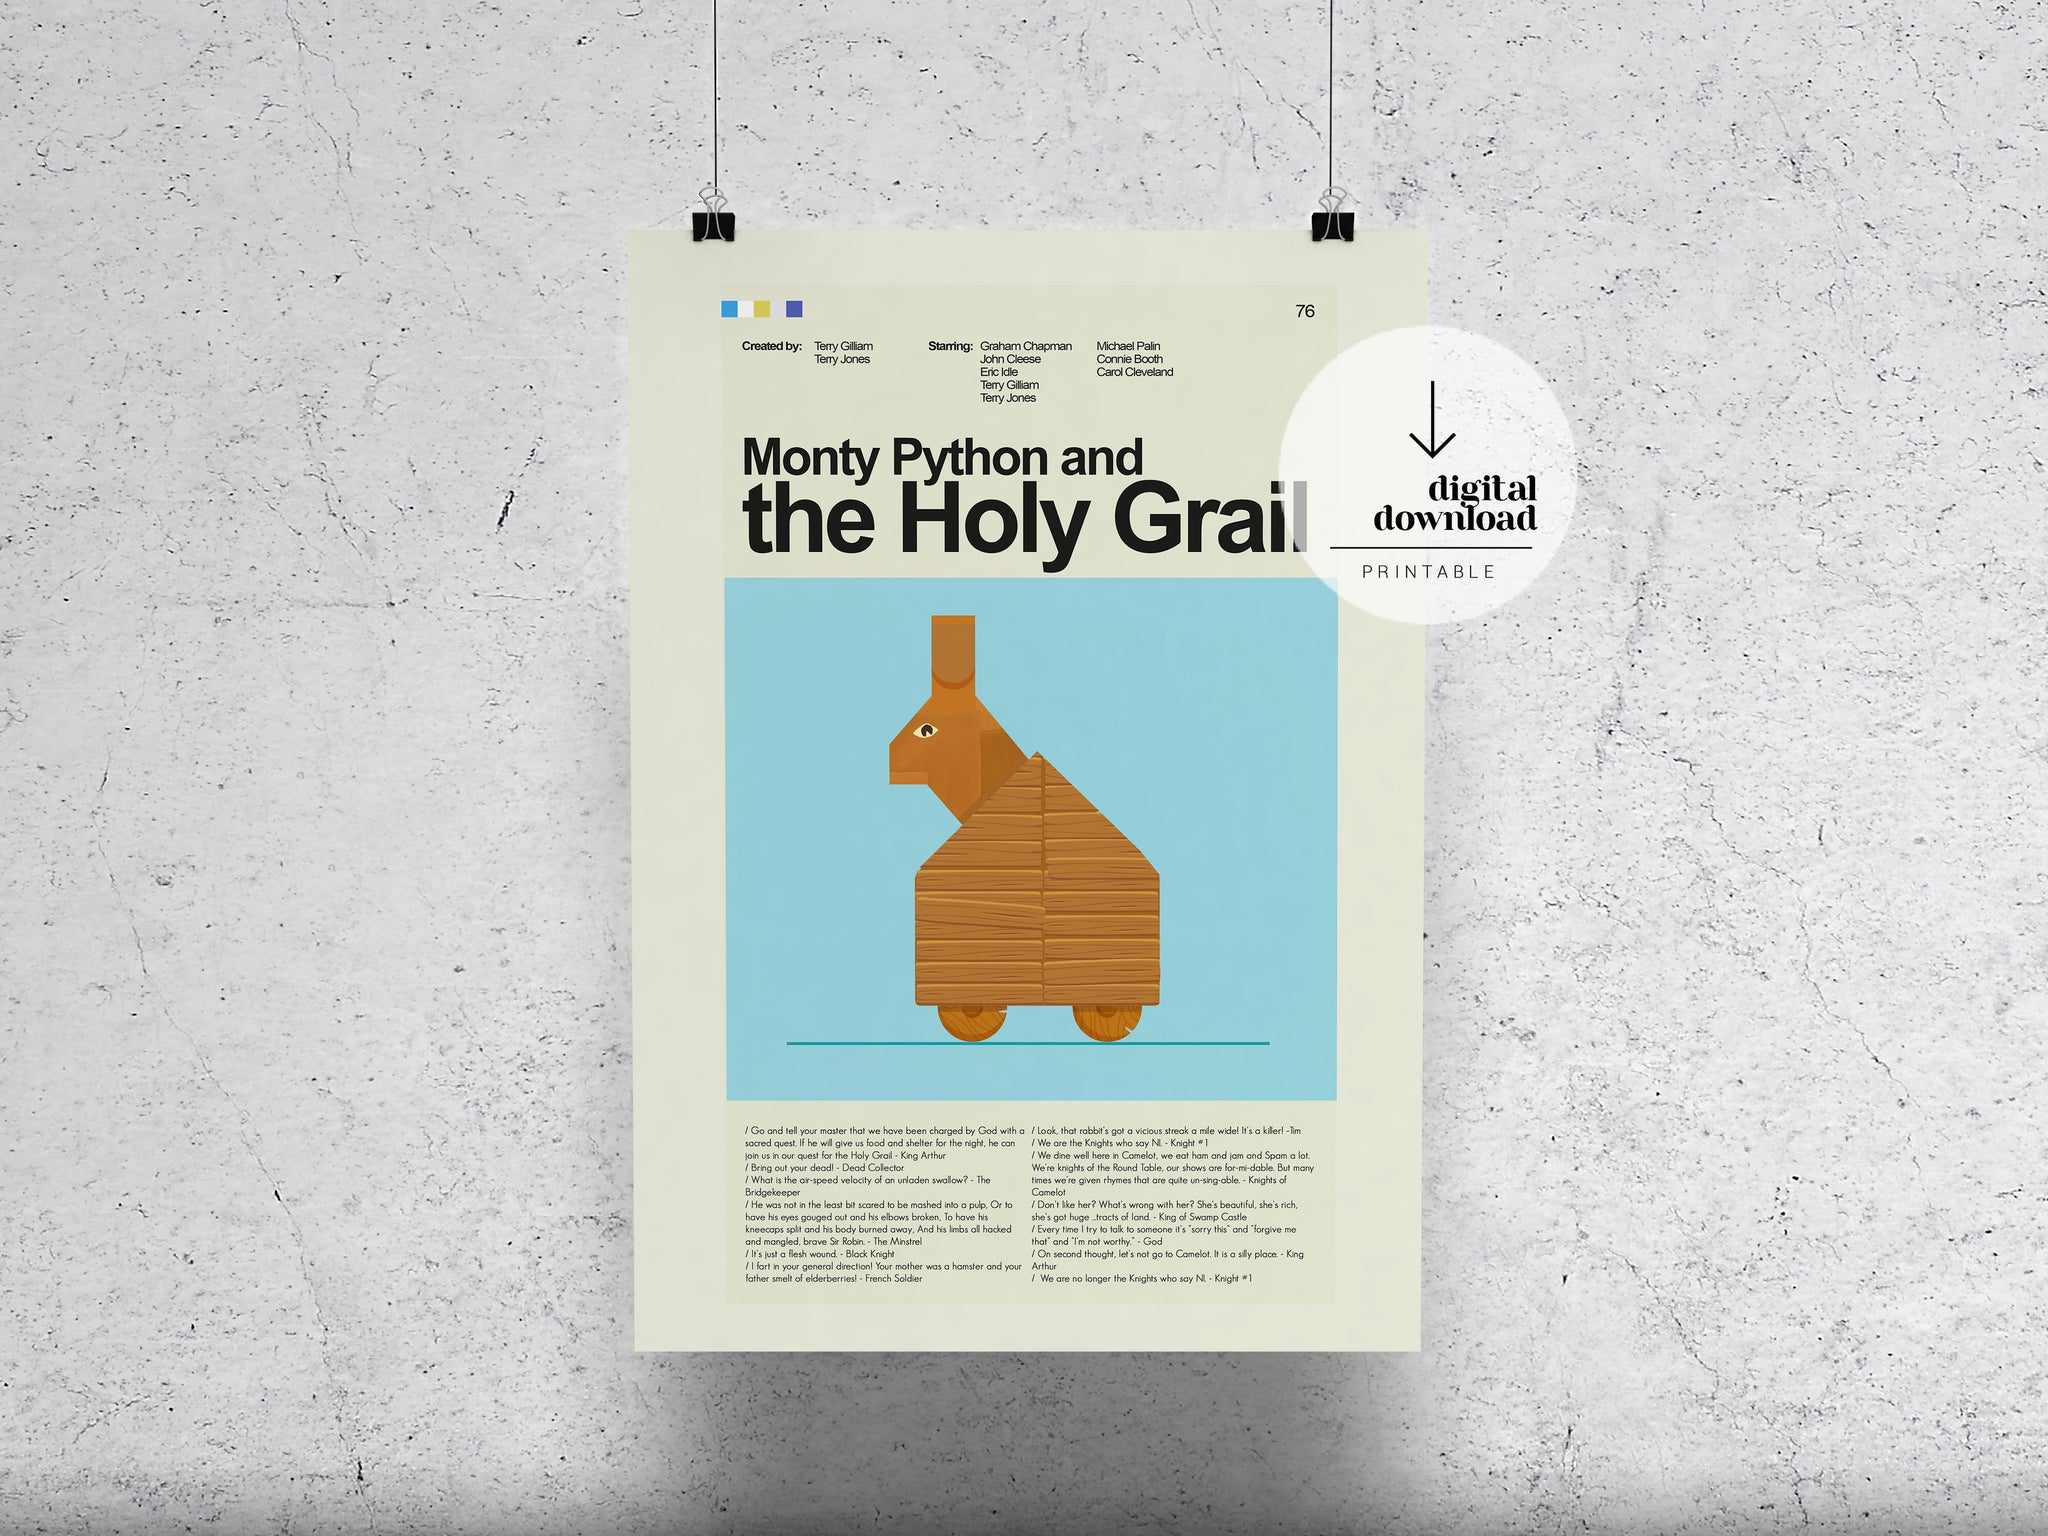 Monty Python and the Holy Grail | DIGITAL DOWNLOAD